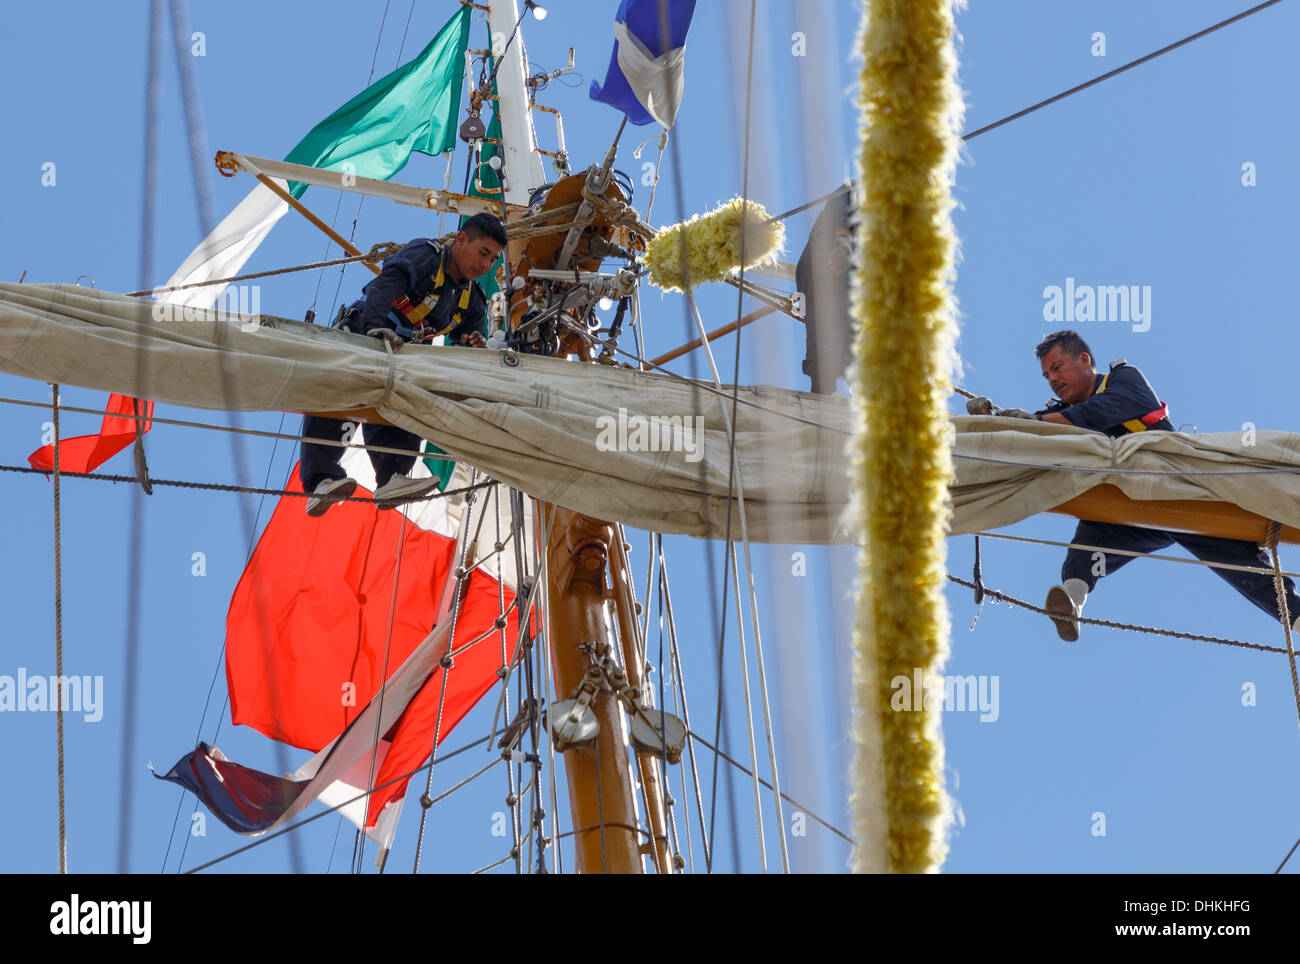 Crew members of the Mexican Navy training vessel  handling her sails in The Tall Ships Races of 2013. - Stock Image